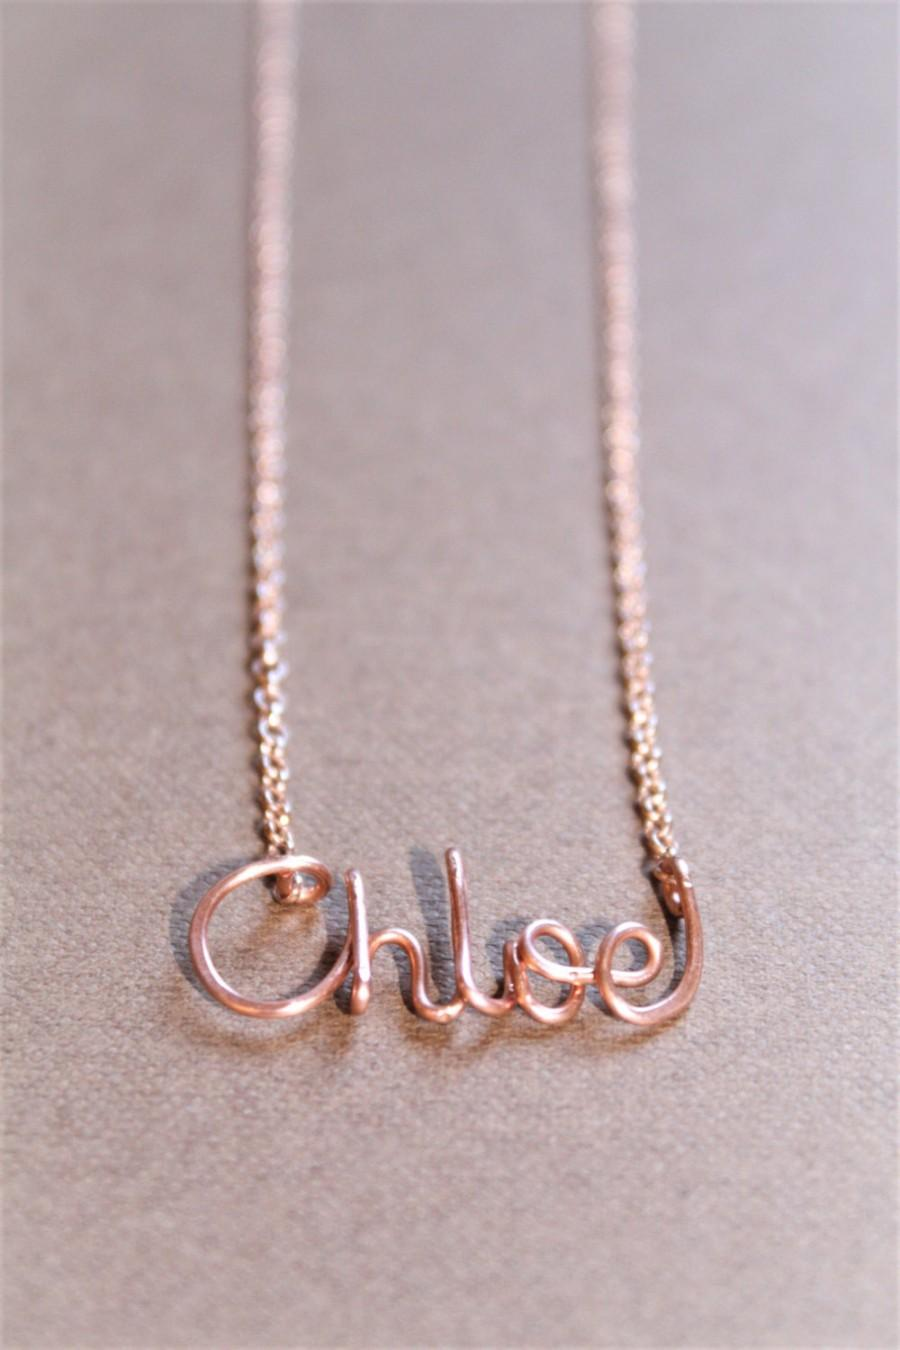 rose gold personalized name necklace dainty name necklace tiny